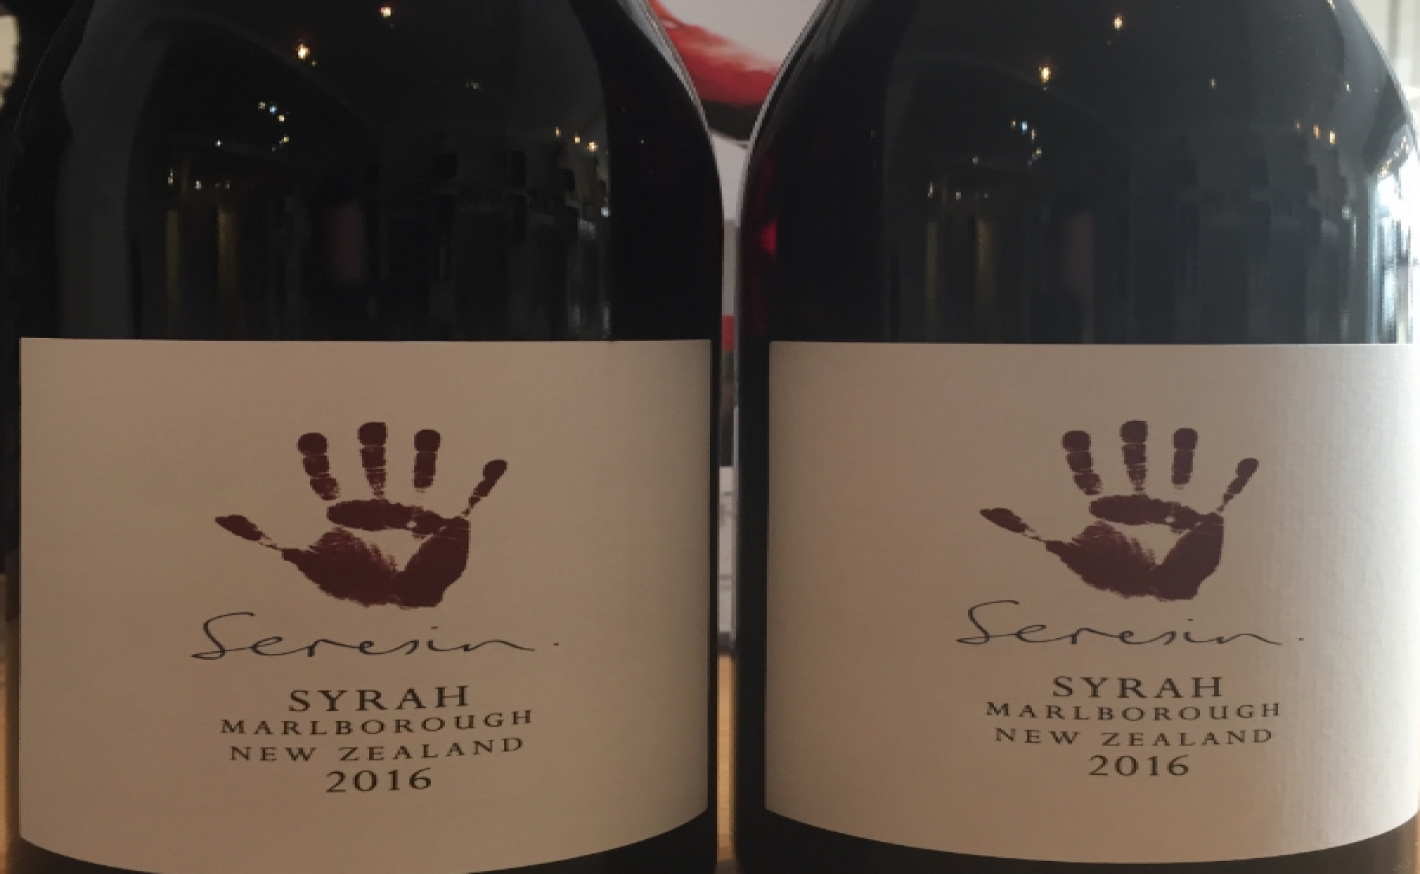 Seresin Syrah: New Zealand's Newest Superstar Red